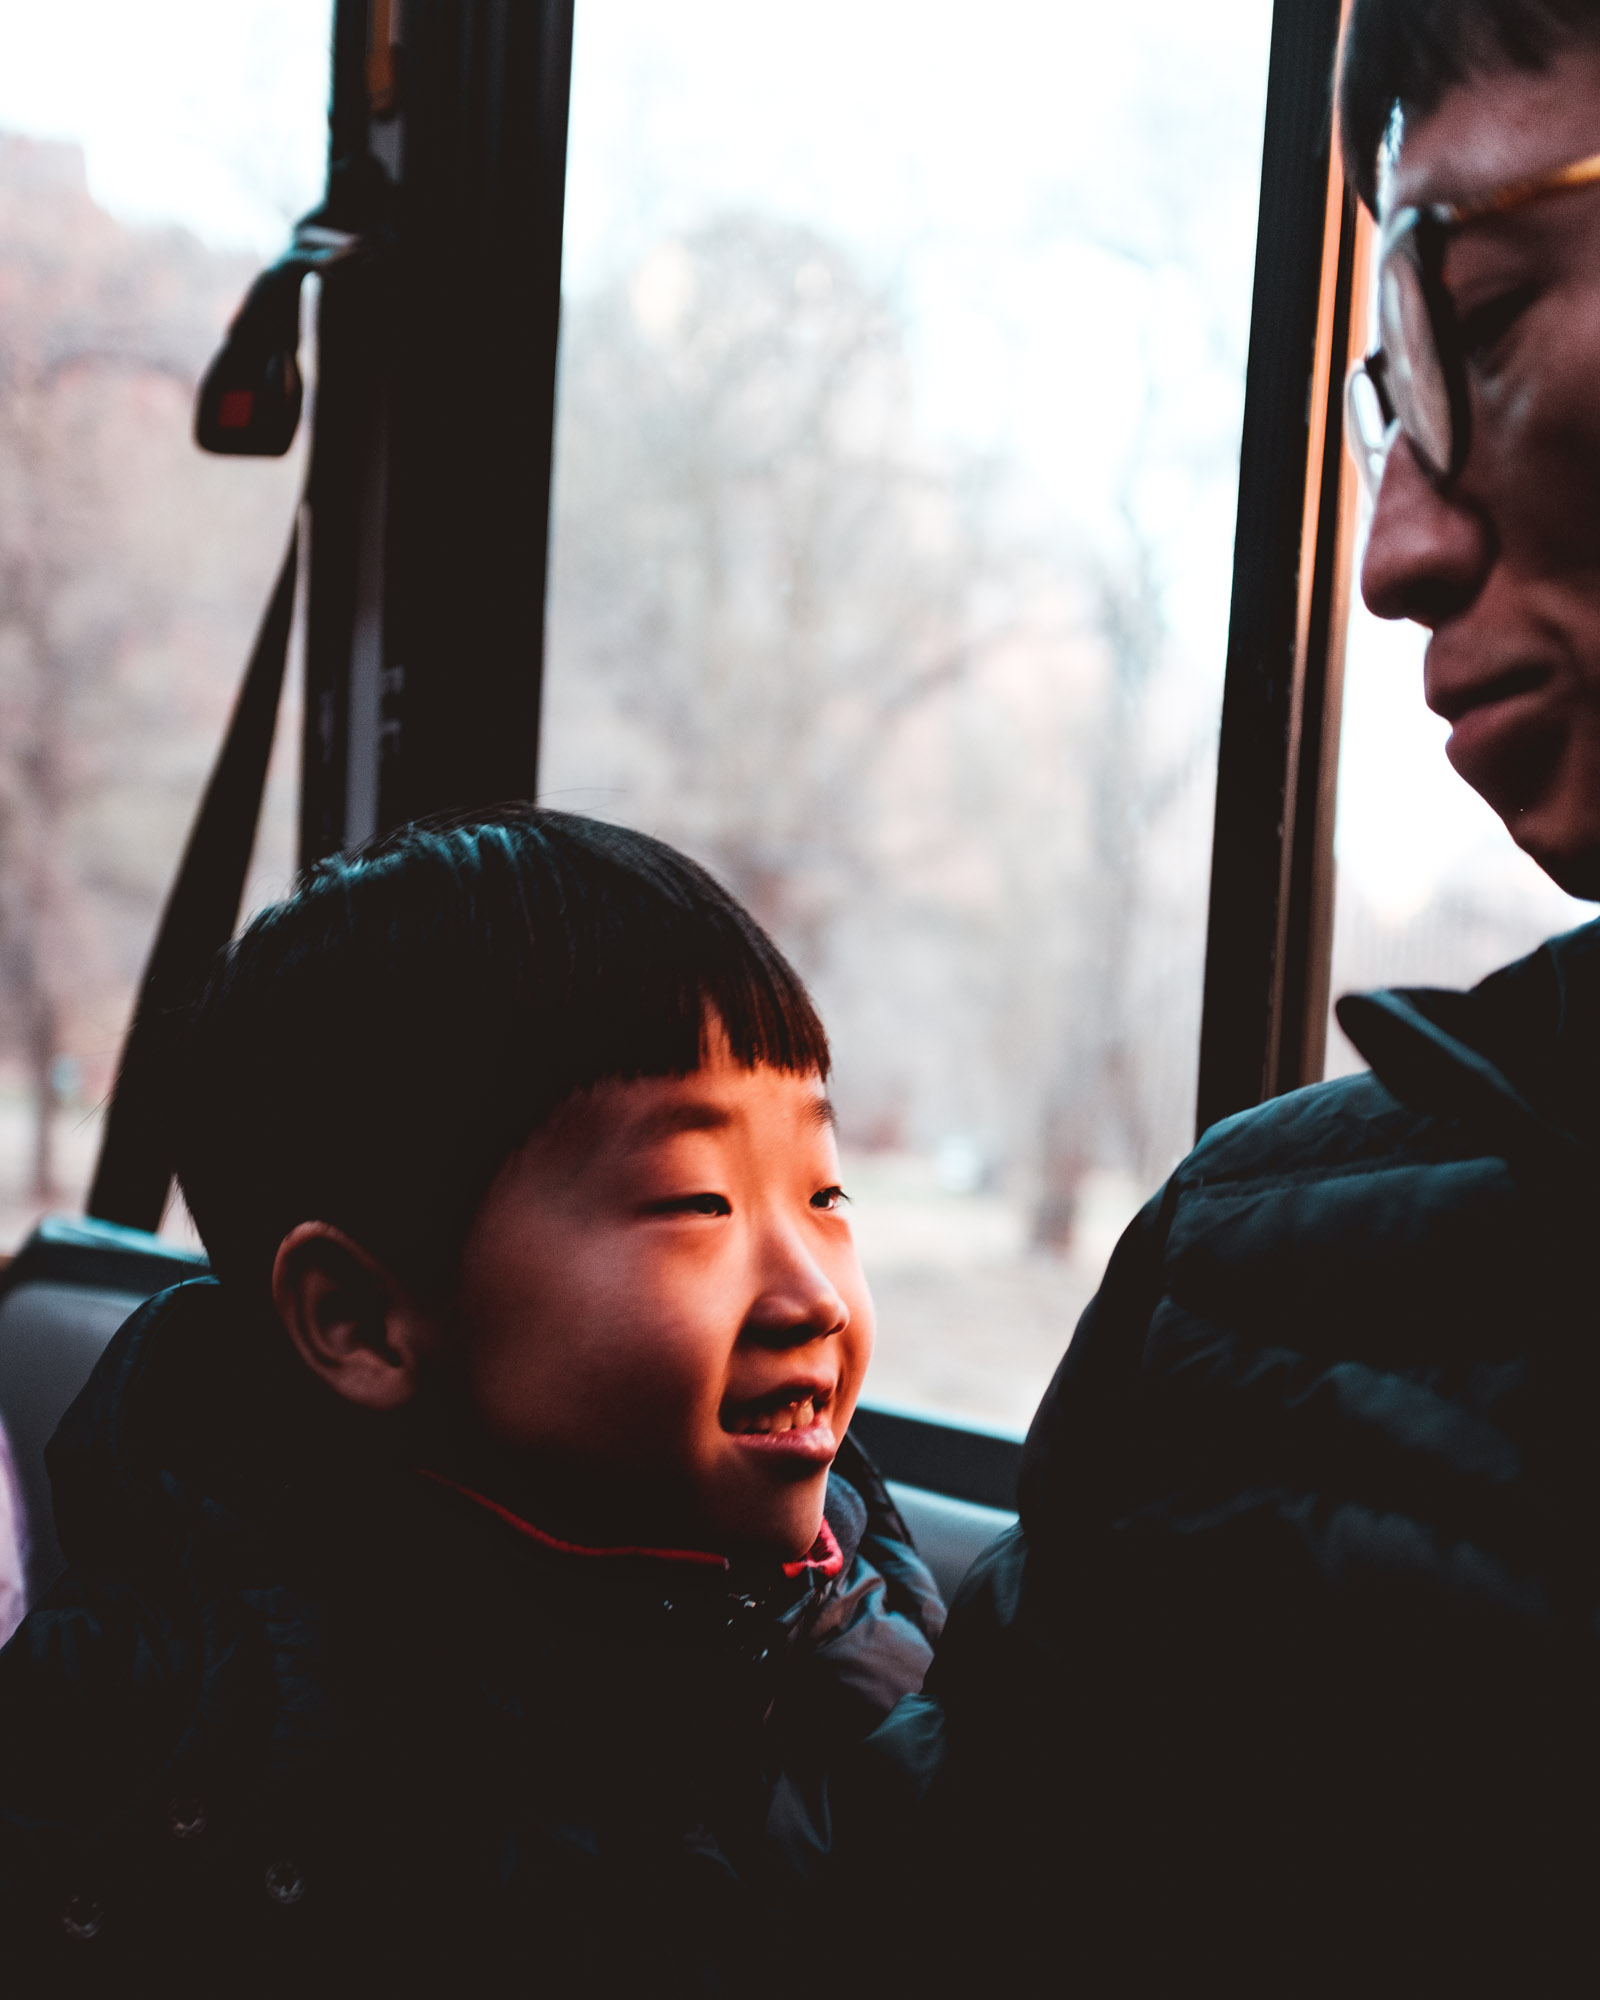 smiling-boy-on-bus-zion-national-park-utah